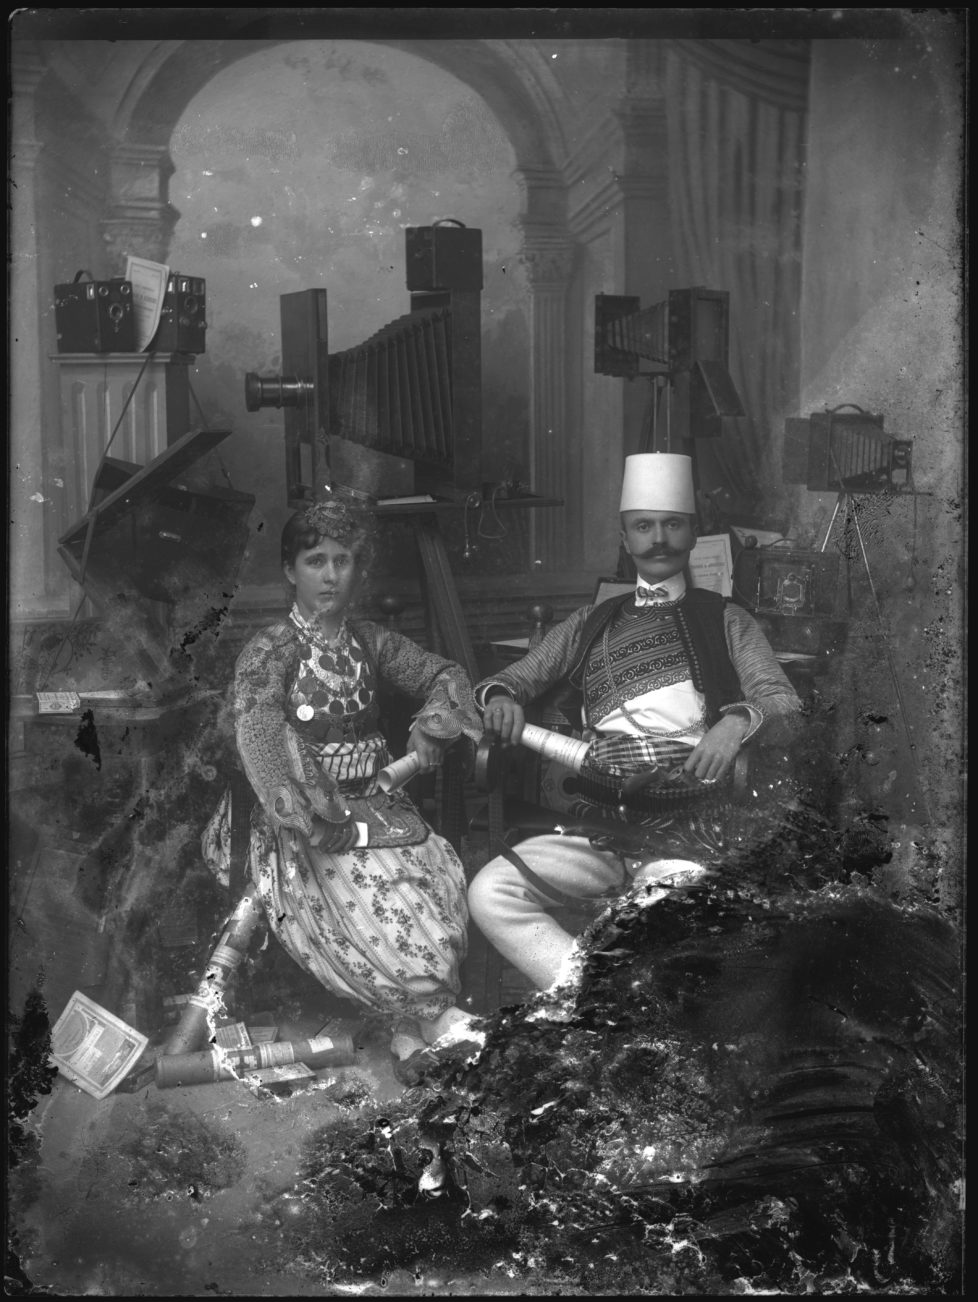 Kel Marubi with his wife in the studio, no date, silver gelatine dry process on glass © Kel Marubi / Marubi National Museum of Photography, Shkodër